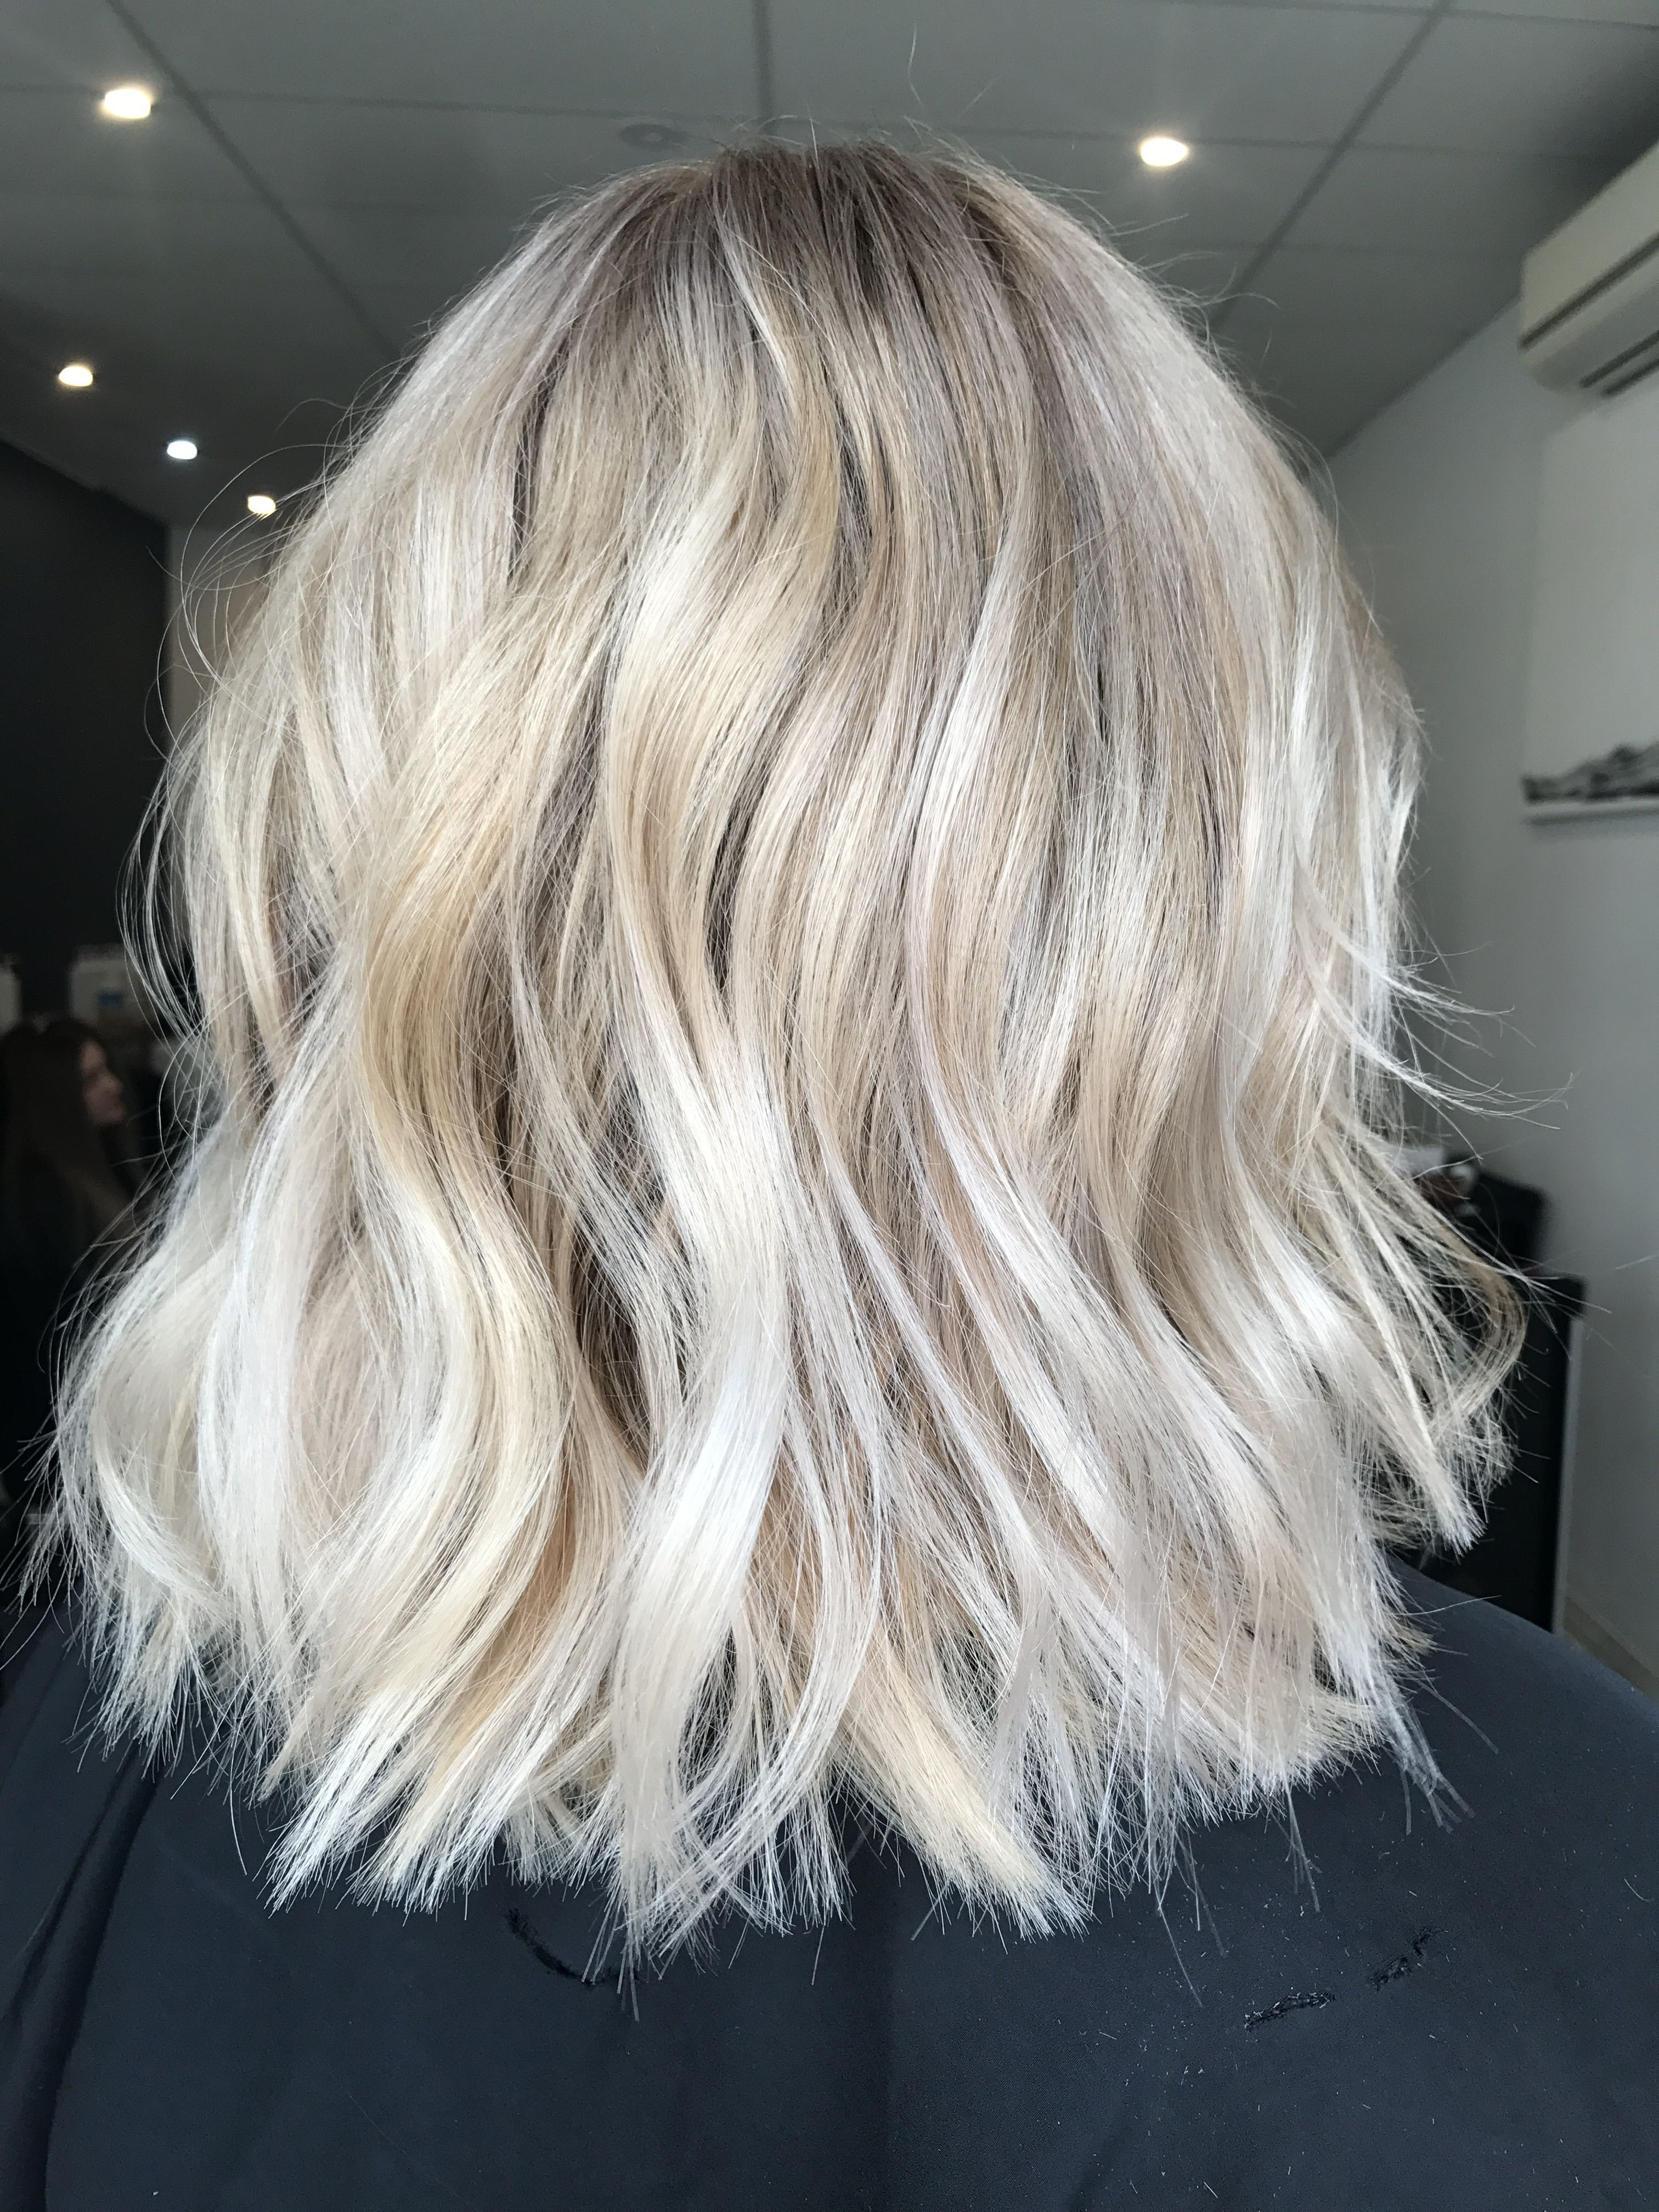 Blonde balayage, long hair, cool girl hair ✌️  Lived in hair colour Blonde b...,  #Balayage #balayagehairgolden #Blonde #Colour #Cool #Girl #Hair #Lived #Long